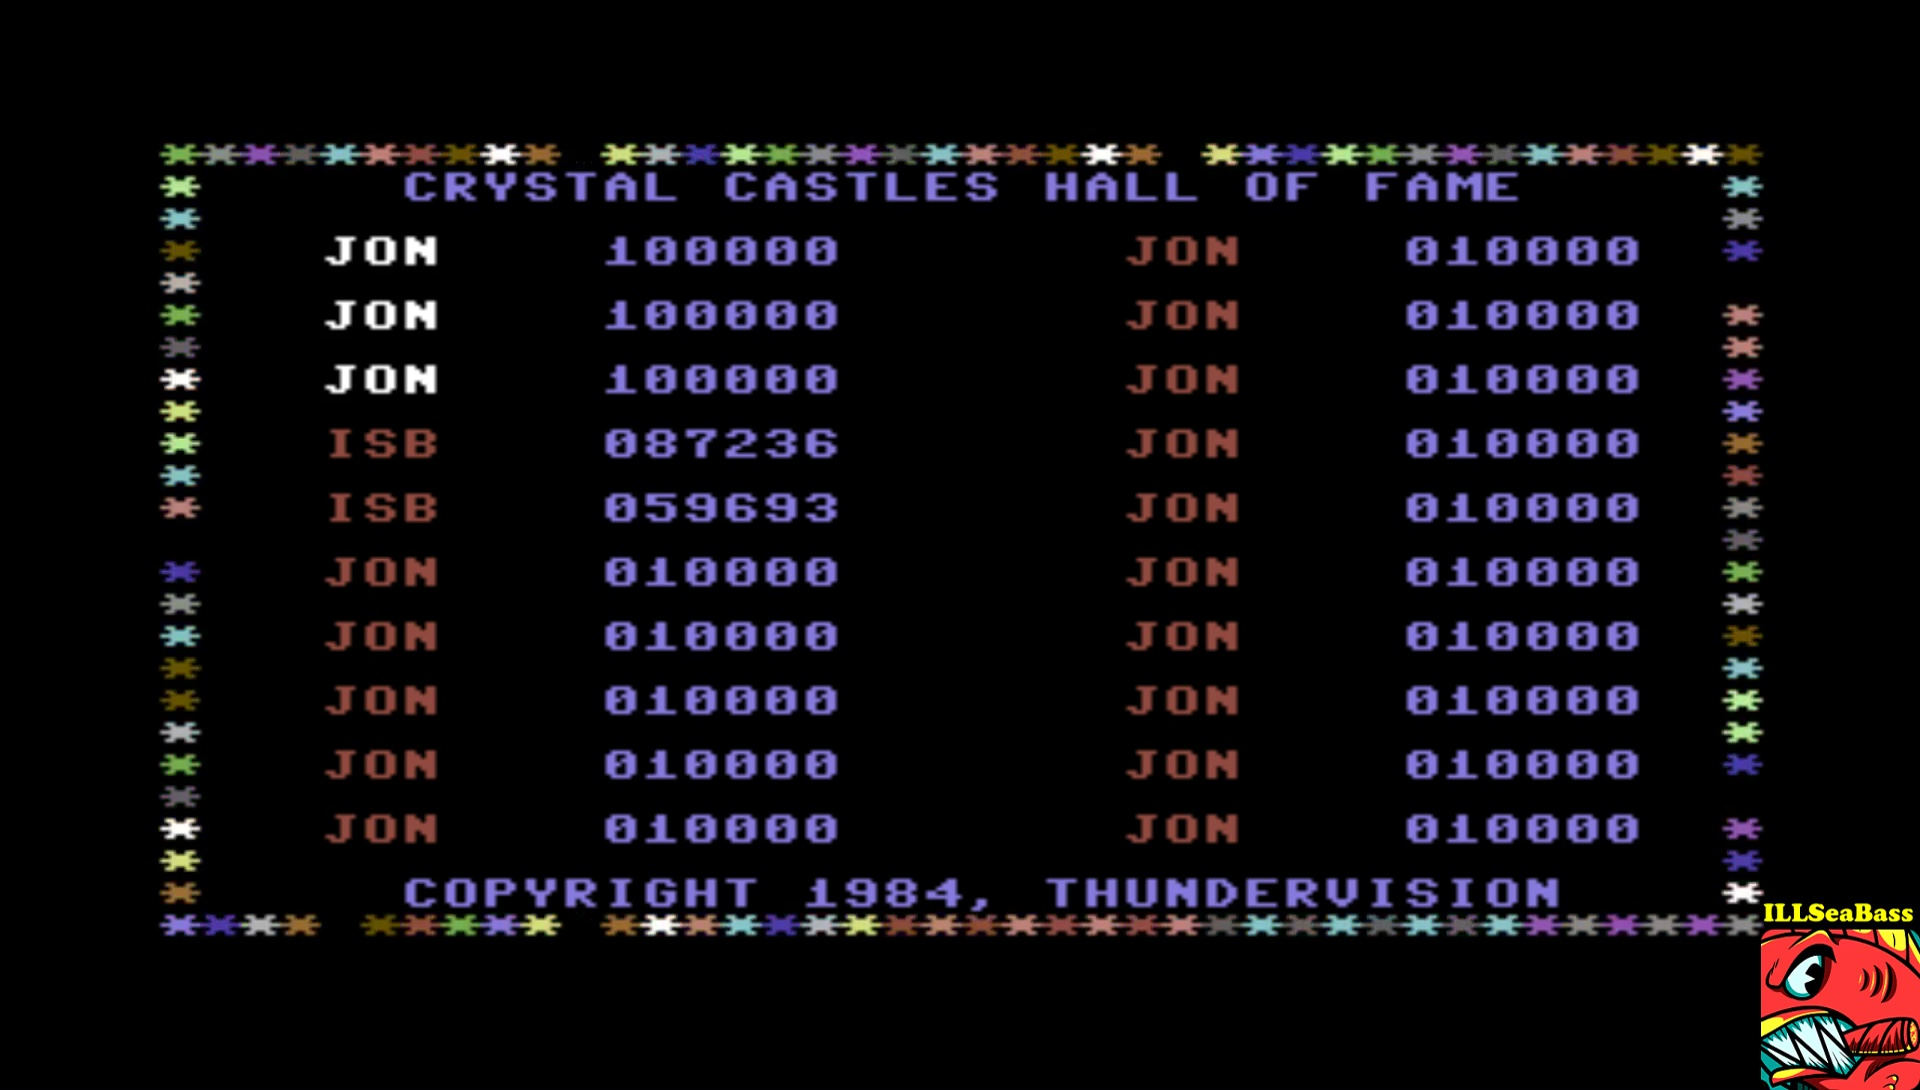 ILLSeaBass: Crystal Castles [Thundervision] (Commodore 64 Emulated) 87,236 points on 2017-03-18 16:12:16